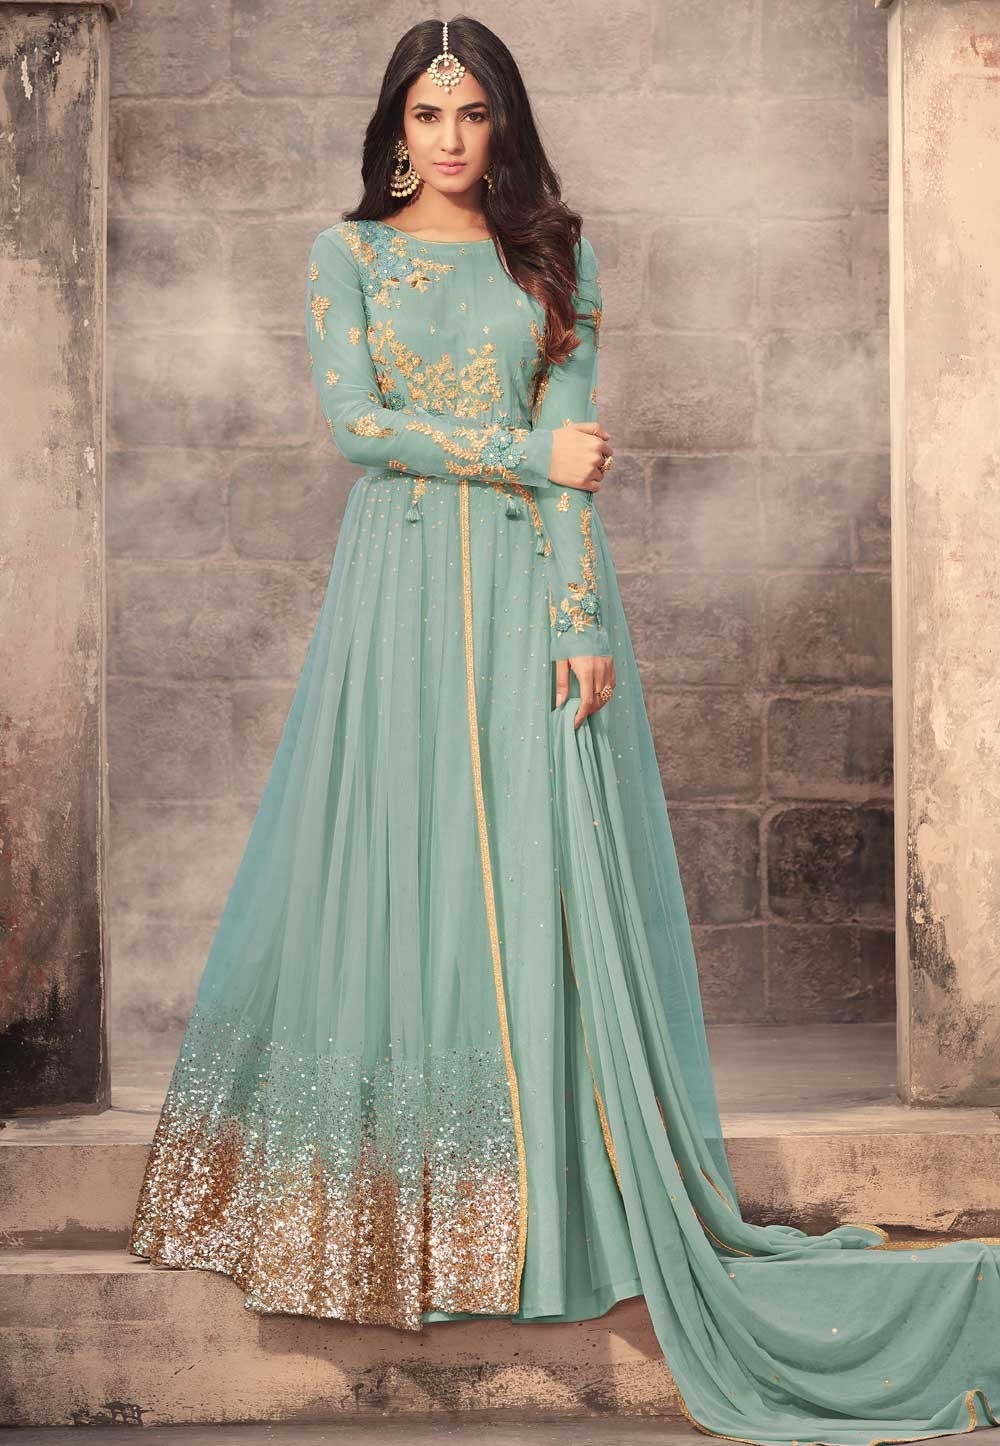 Attractive Looking Turquoise Color Designer Salwar Kameez